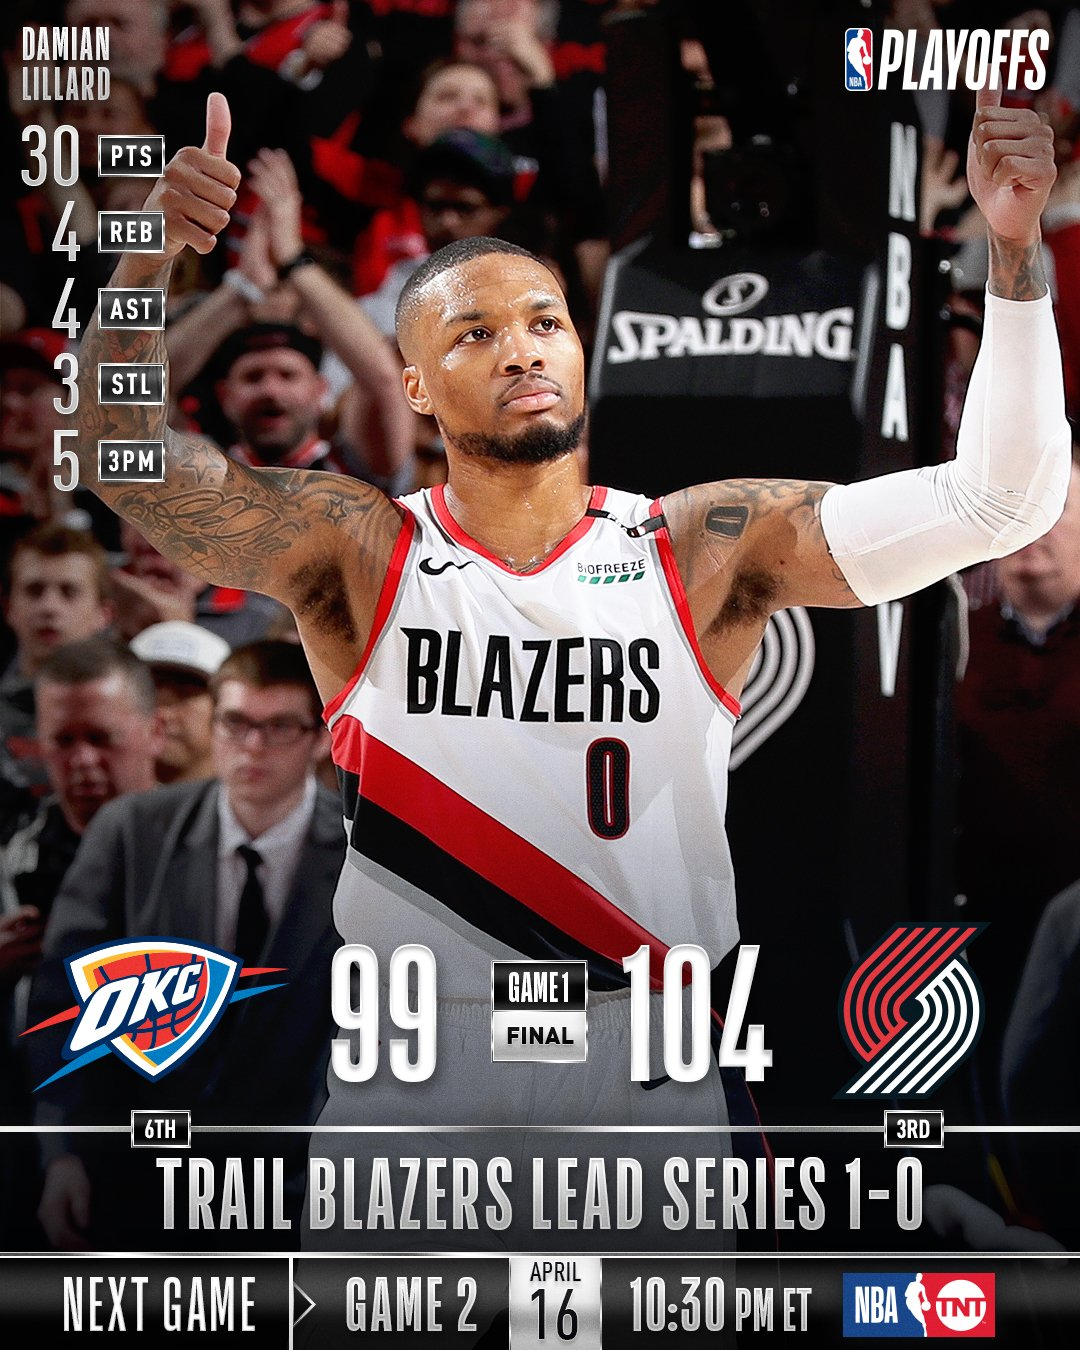 The @trailblazers take Game 1 at home!  Game 2: Tuesday (4/16), 10:30pm/et, TNT  #NBAPlayoffs https://t.co/6zCBjbTDJc